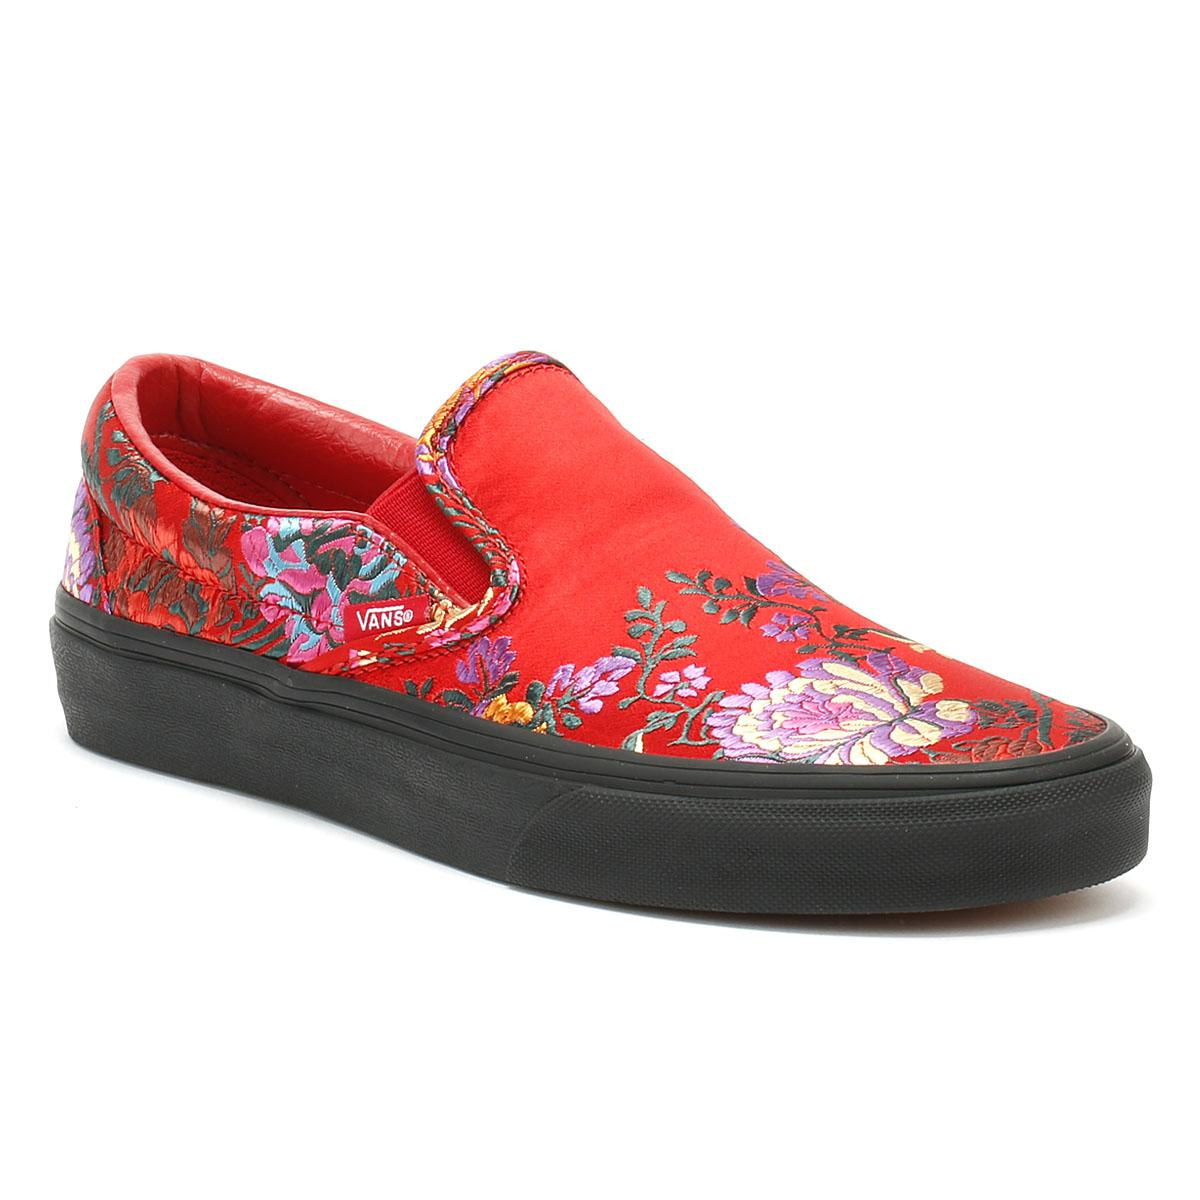 ae5a6f63081 Vans - Classic Slip On Festival Satin Womens Red Trainers - Lyst. View  fullscreen